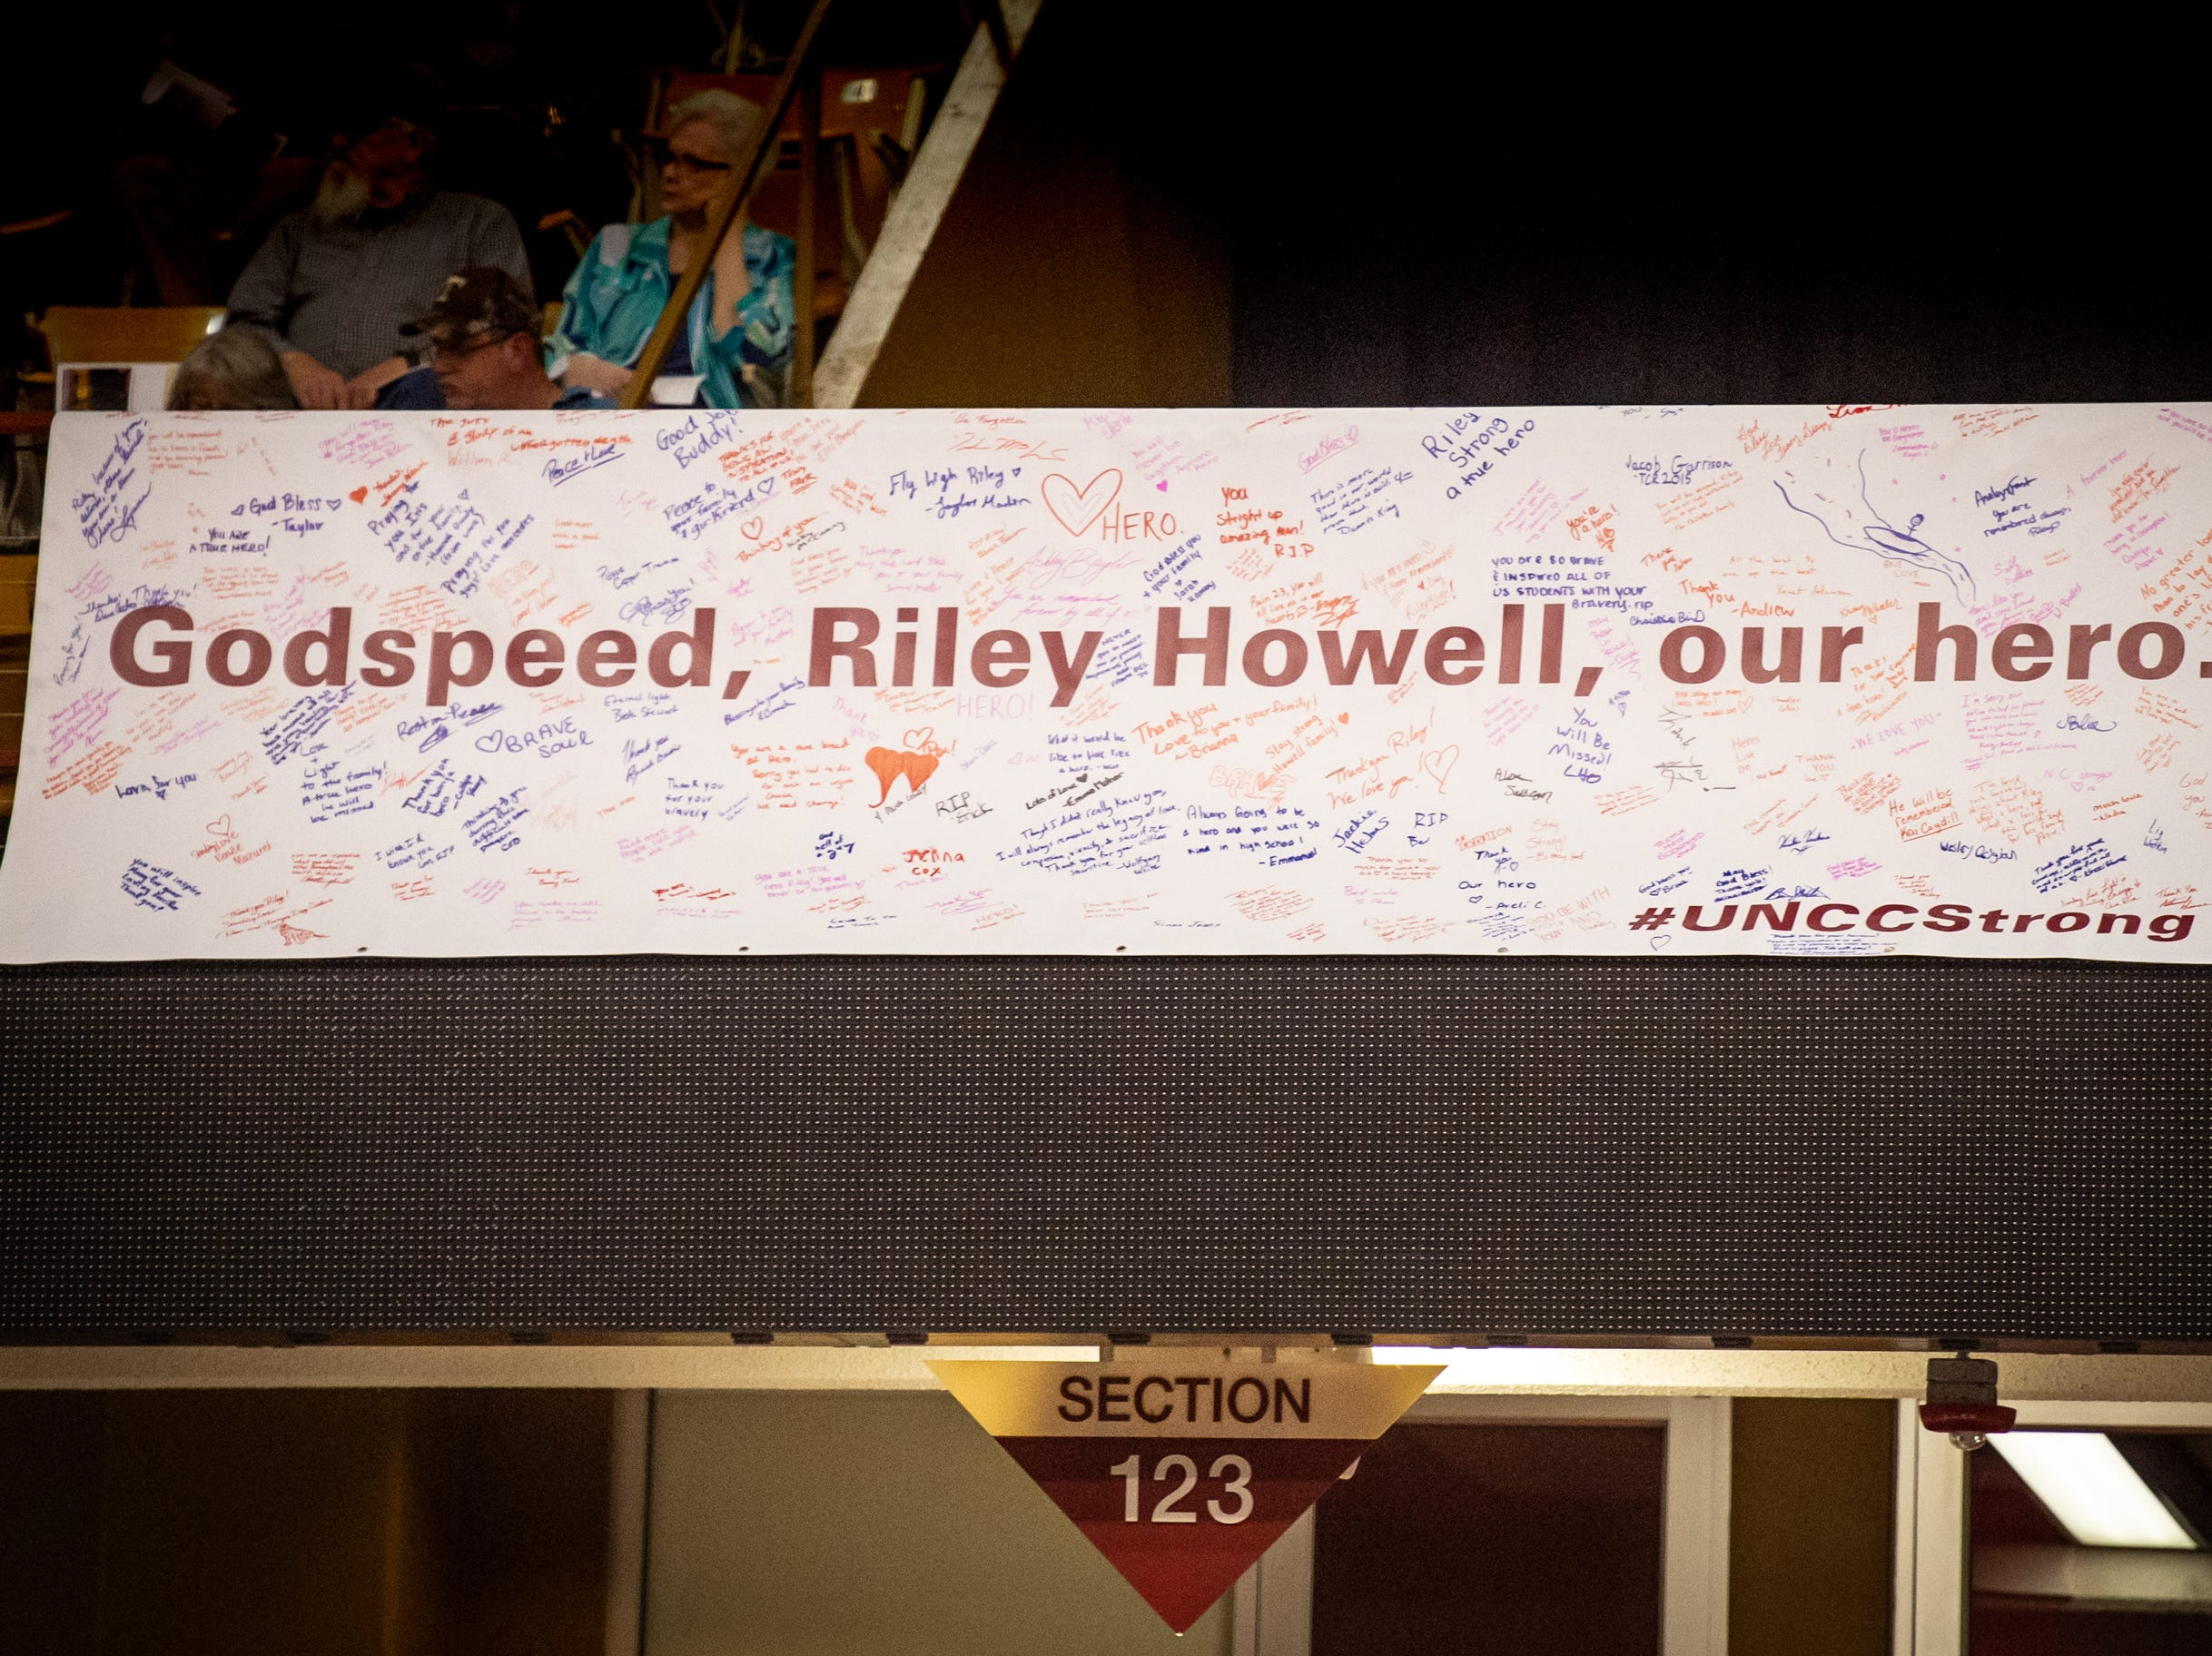 Former student Riley Howell, who was killed by a gunman April 30 in a UNC Charlotte classroom, was honored.